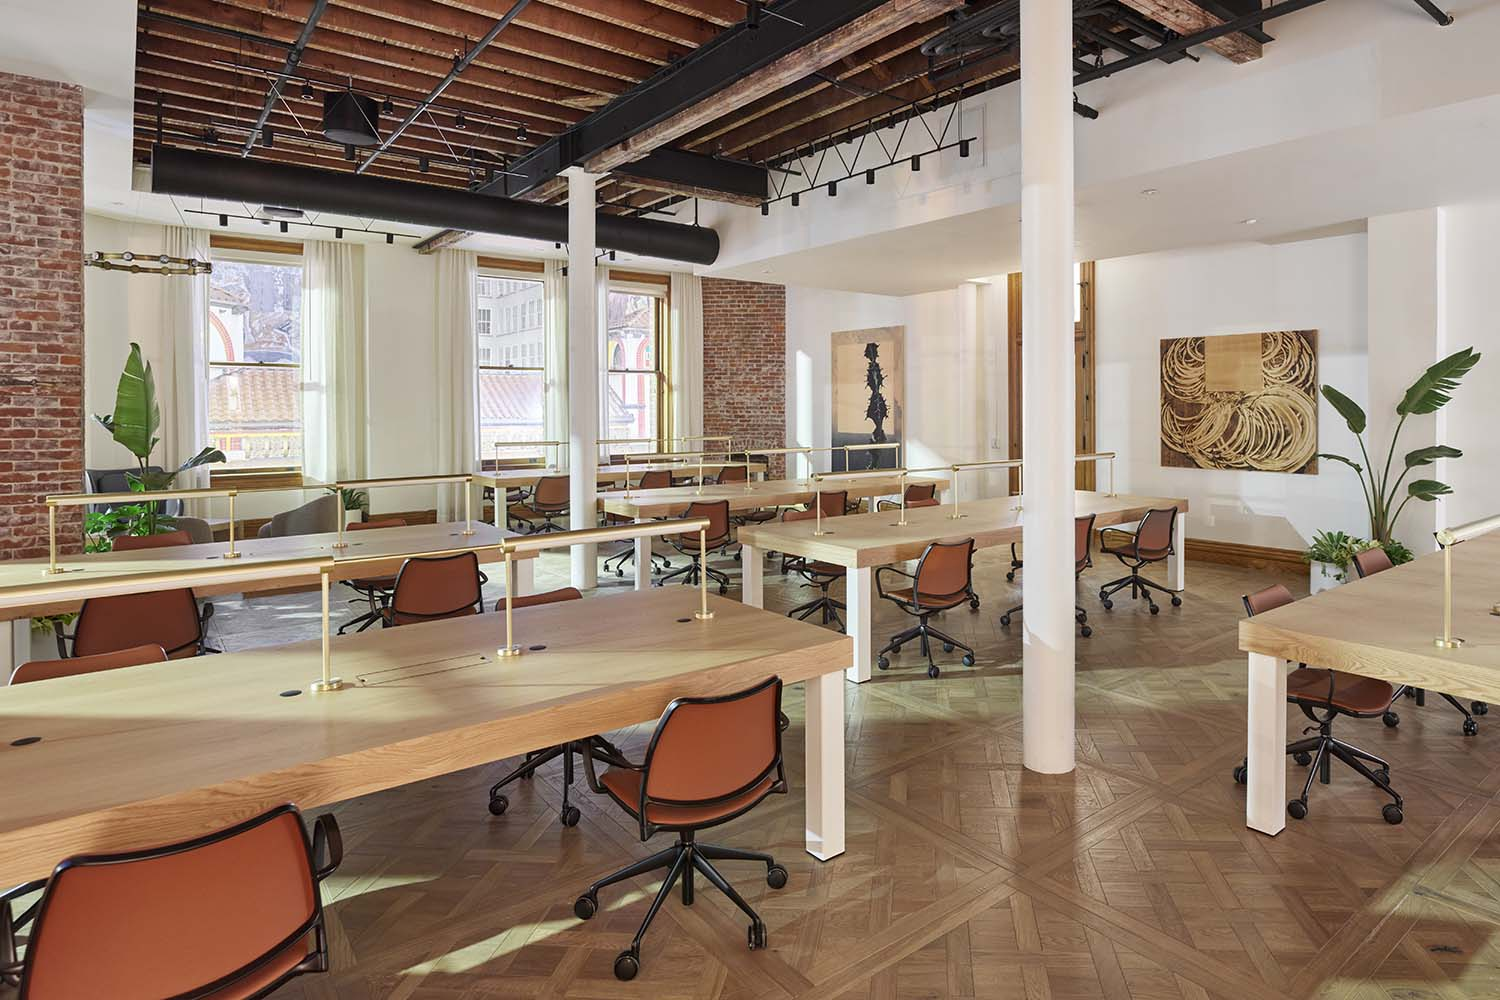 NeueHouse Bradbury, Downtown Los Angeles Coworking Cultural Space